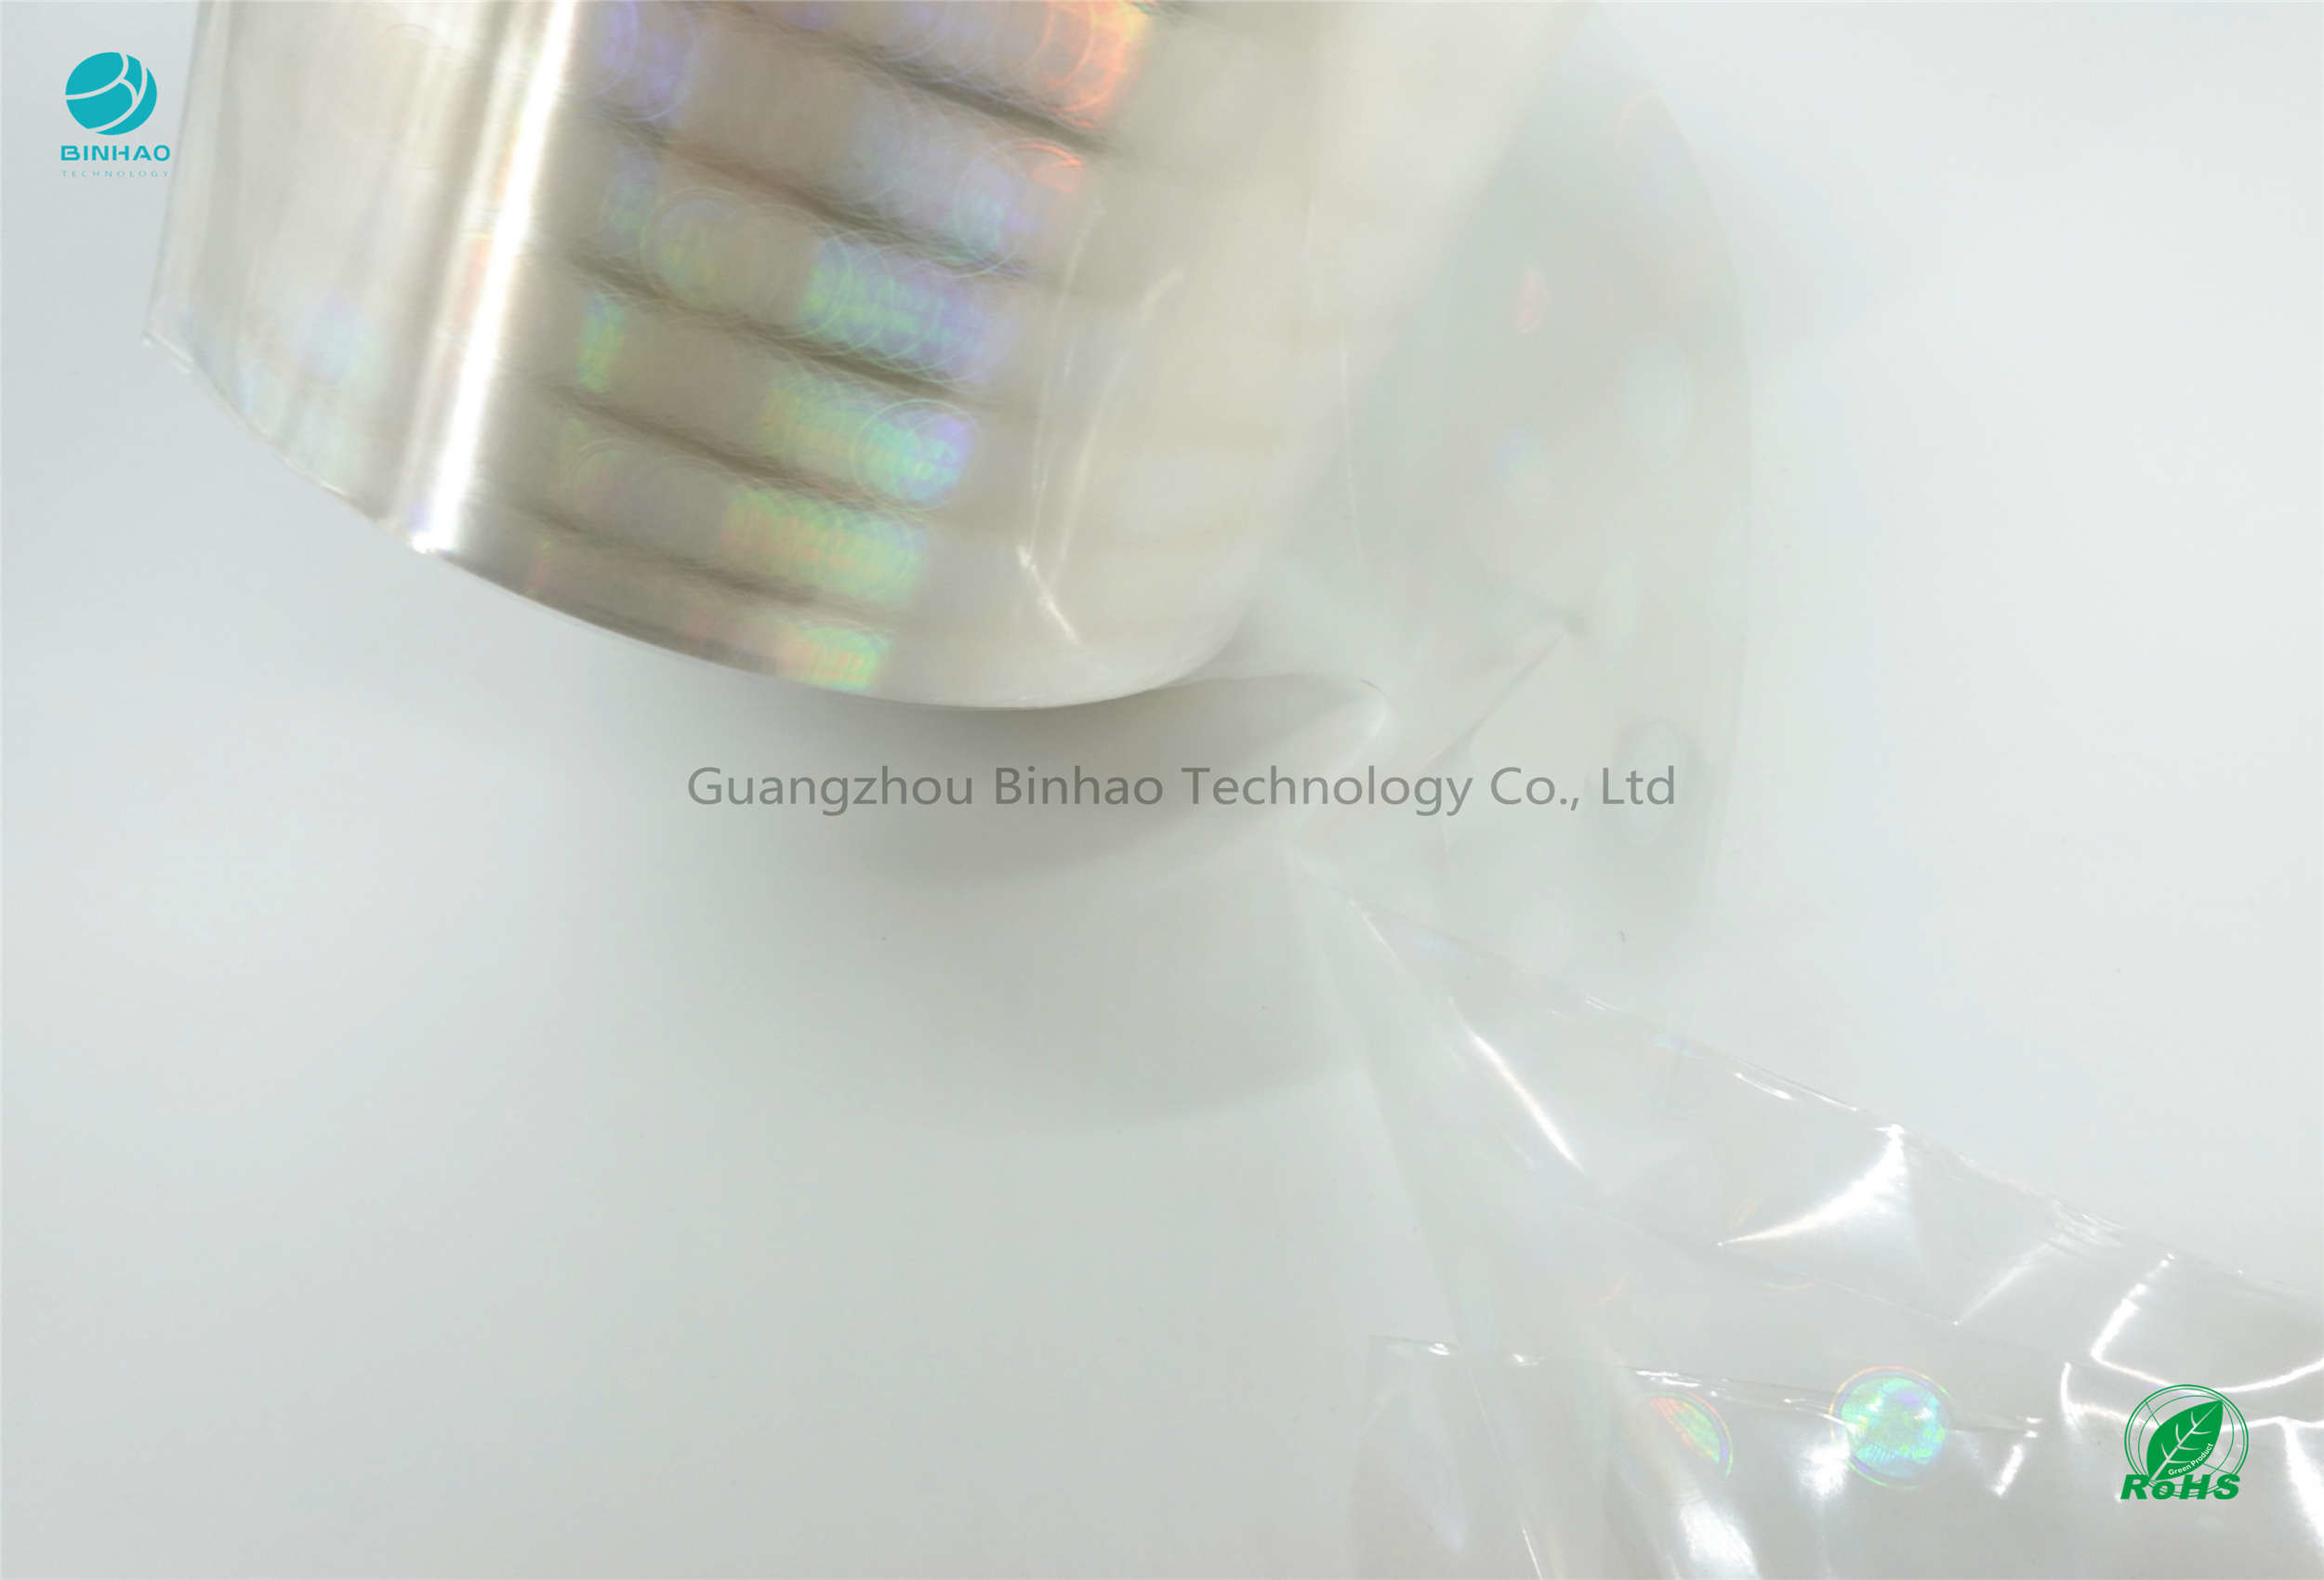 Shine Light Glossy Offset Printing Tobacco BOPP Film Roll Holographic ID 76 mm